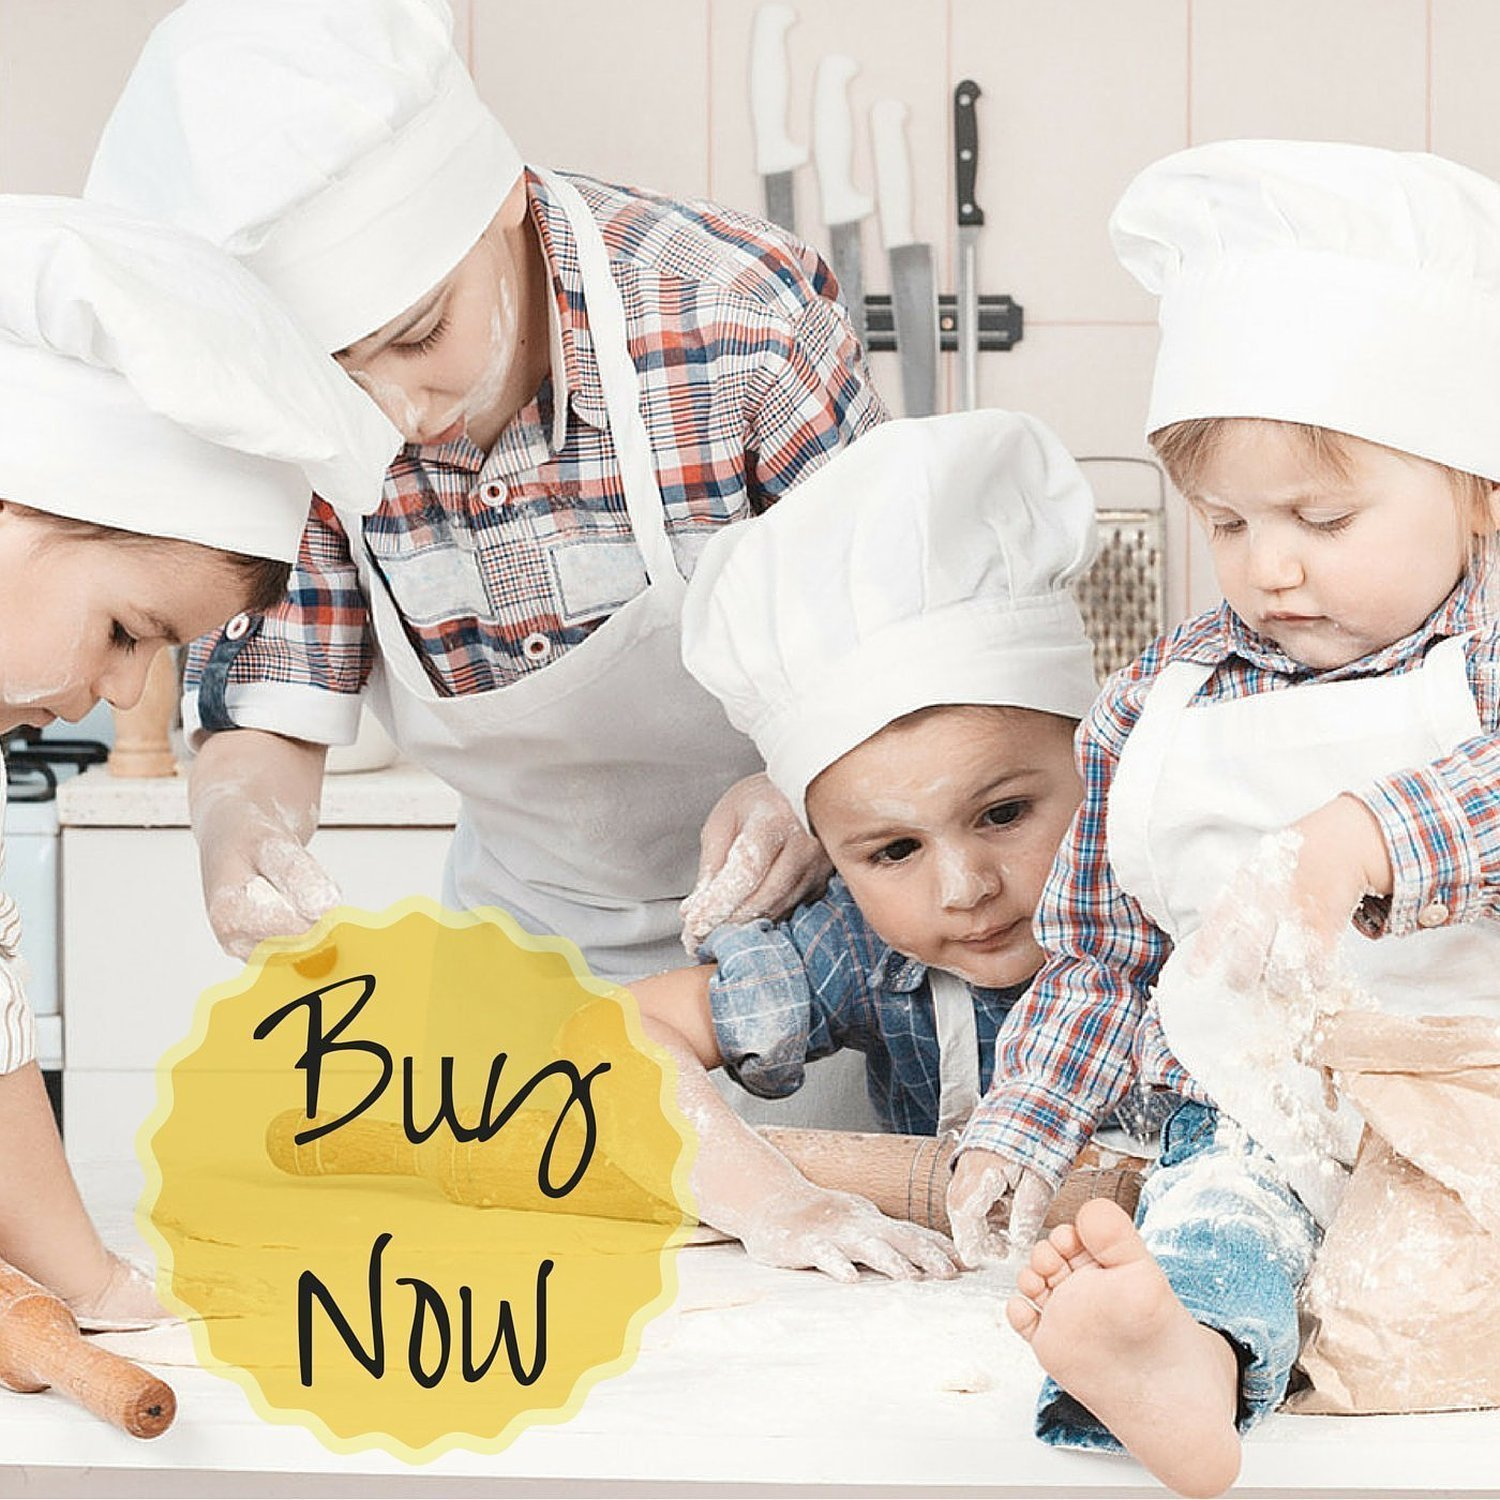 Odelia ObviousChef Kids - Child's Chef Hat Apron Set, Kid's Size, Children's Kitchen Cooking and Baking Wear Kit for Those Chefs in Training, Size (M 6-12 Year, White) by Odelia (Image #9)